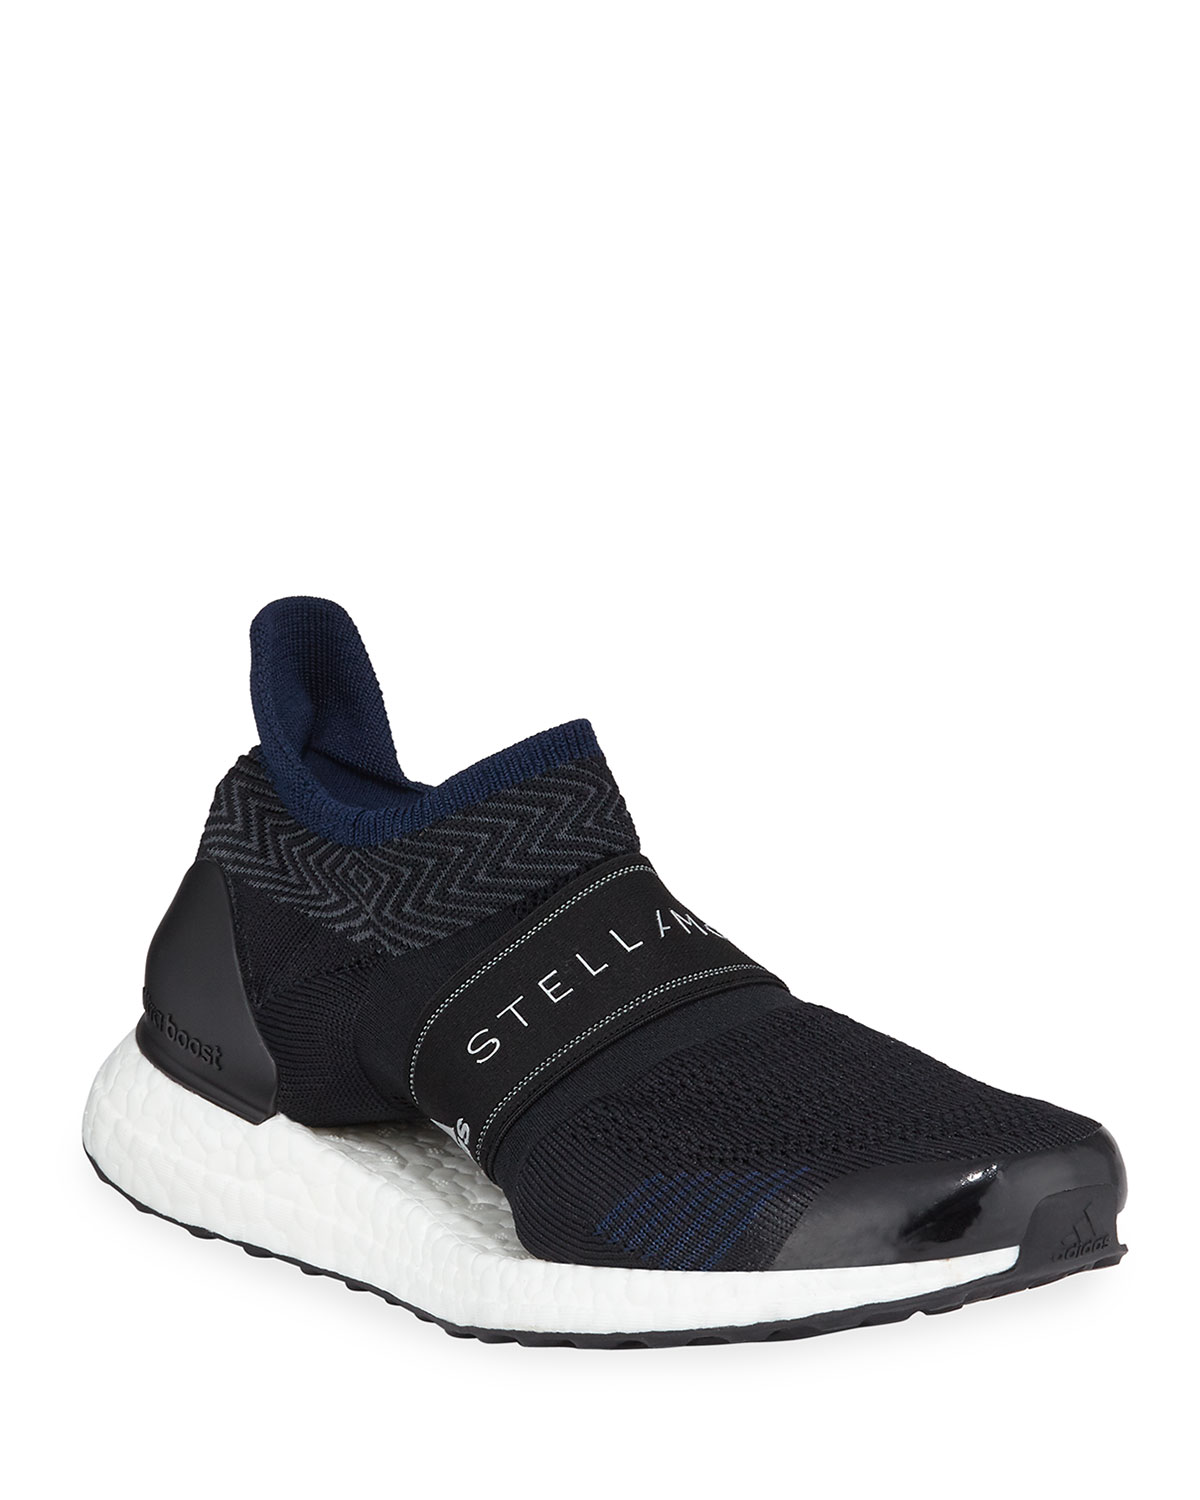 1d6789cb1f76 adidas by Stella McCartney UltraBoost X 3D Sneakers